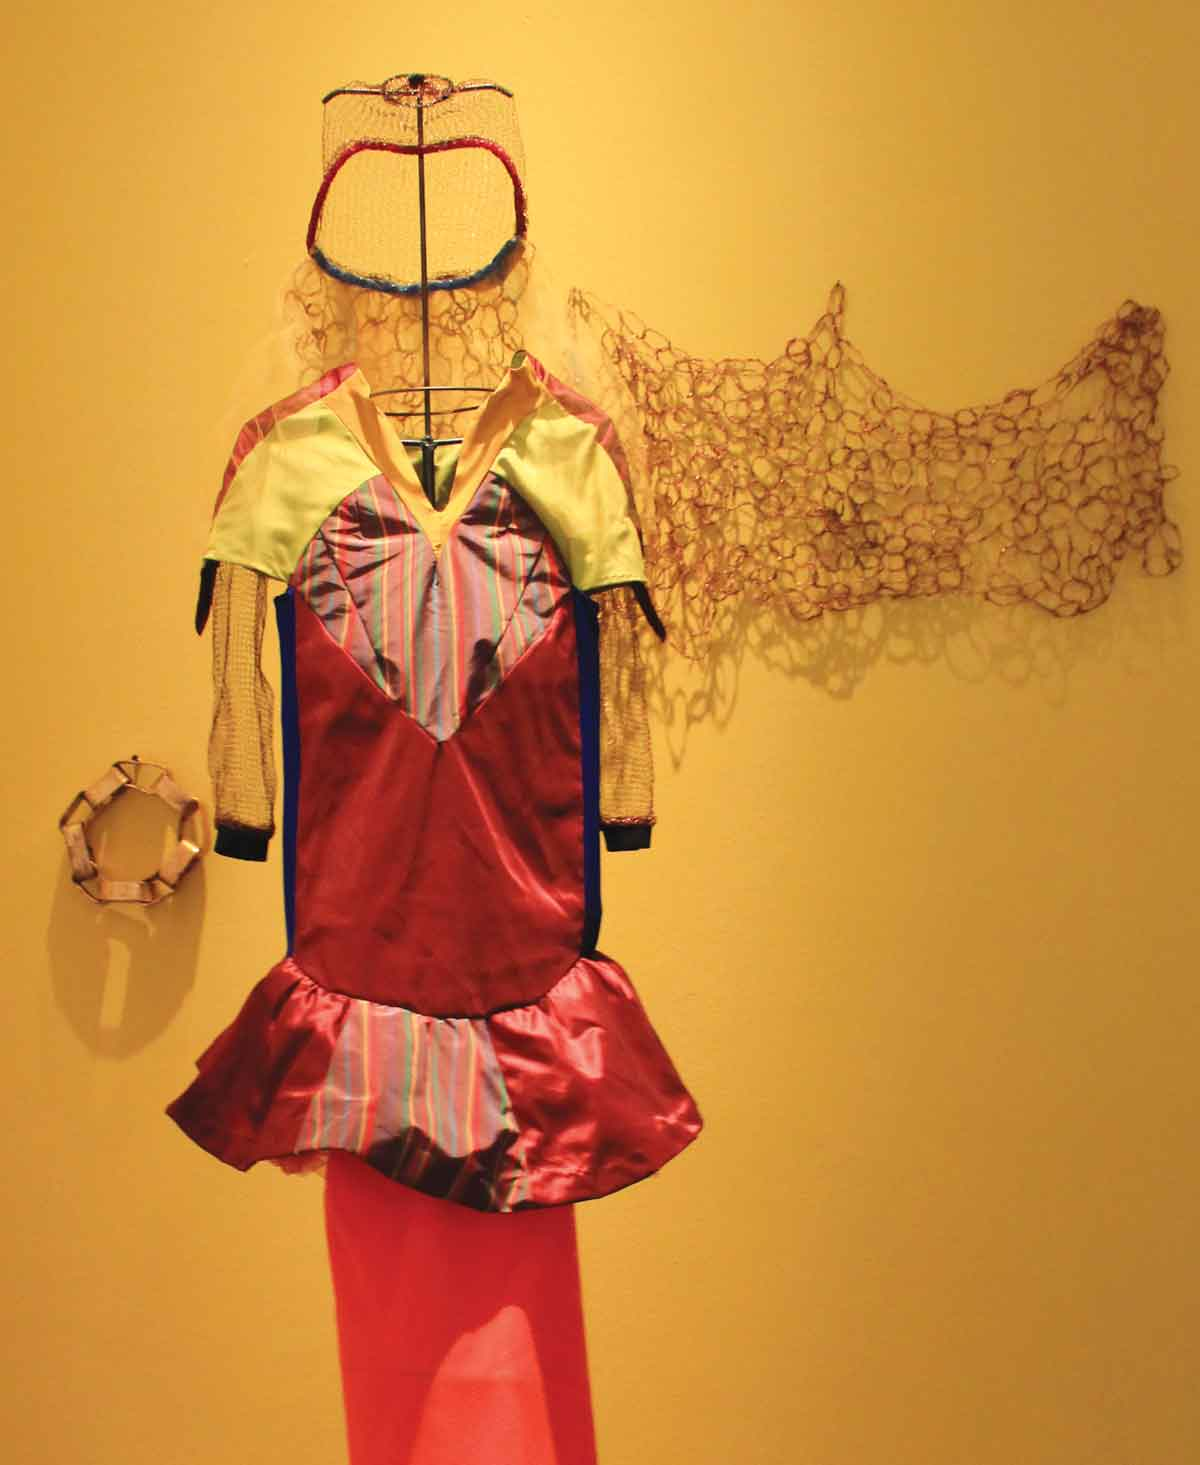 "Jody Culkin, Uni, 2009, fabric, steel, copper mesh, elastic, and broken glass, 80"" x 21"" x 18."" Courtesy of the artist and the Boca Raton Museum of Art."